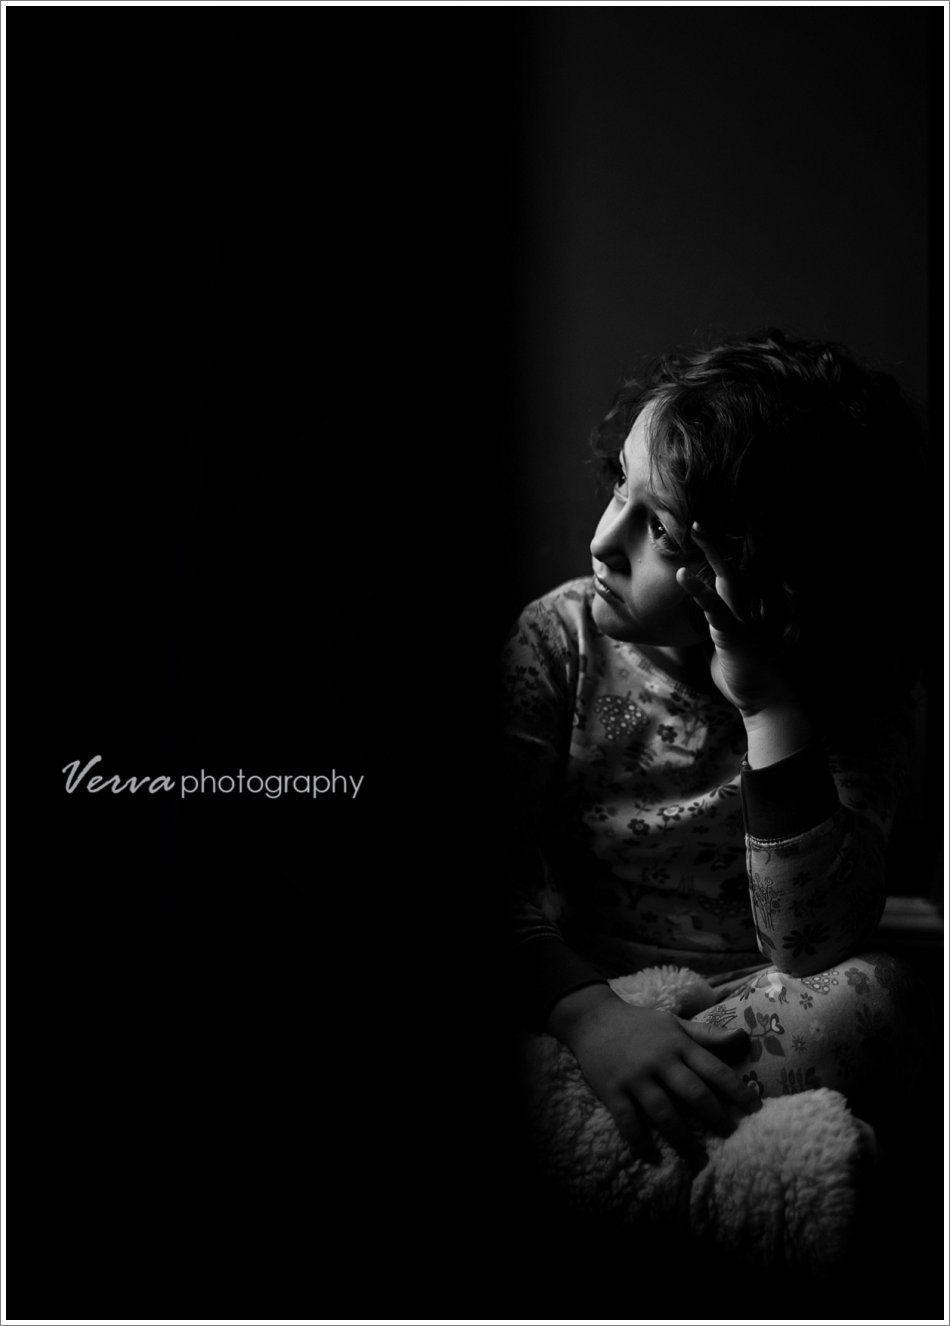 nyc area children's portrait photography, b&w